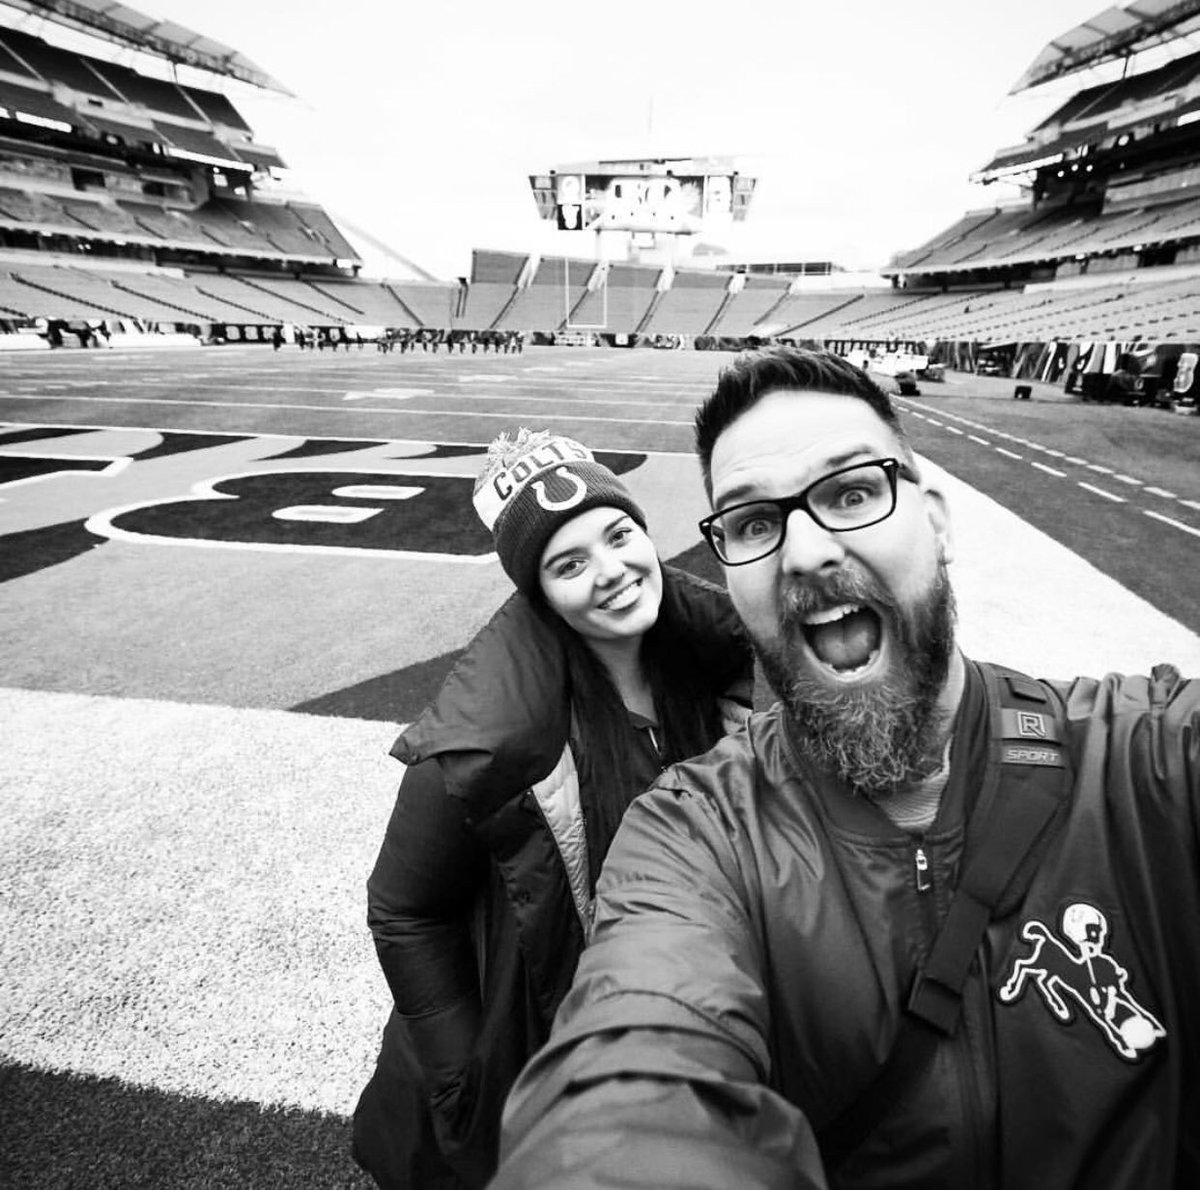 gotta give a shoutout to @mattbowenphoto on #WorldPhotographyDay. 📸 i appreciate you, your #Colts photos and our stadium selfies! 💙